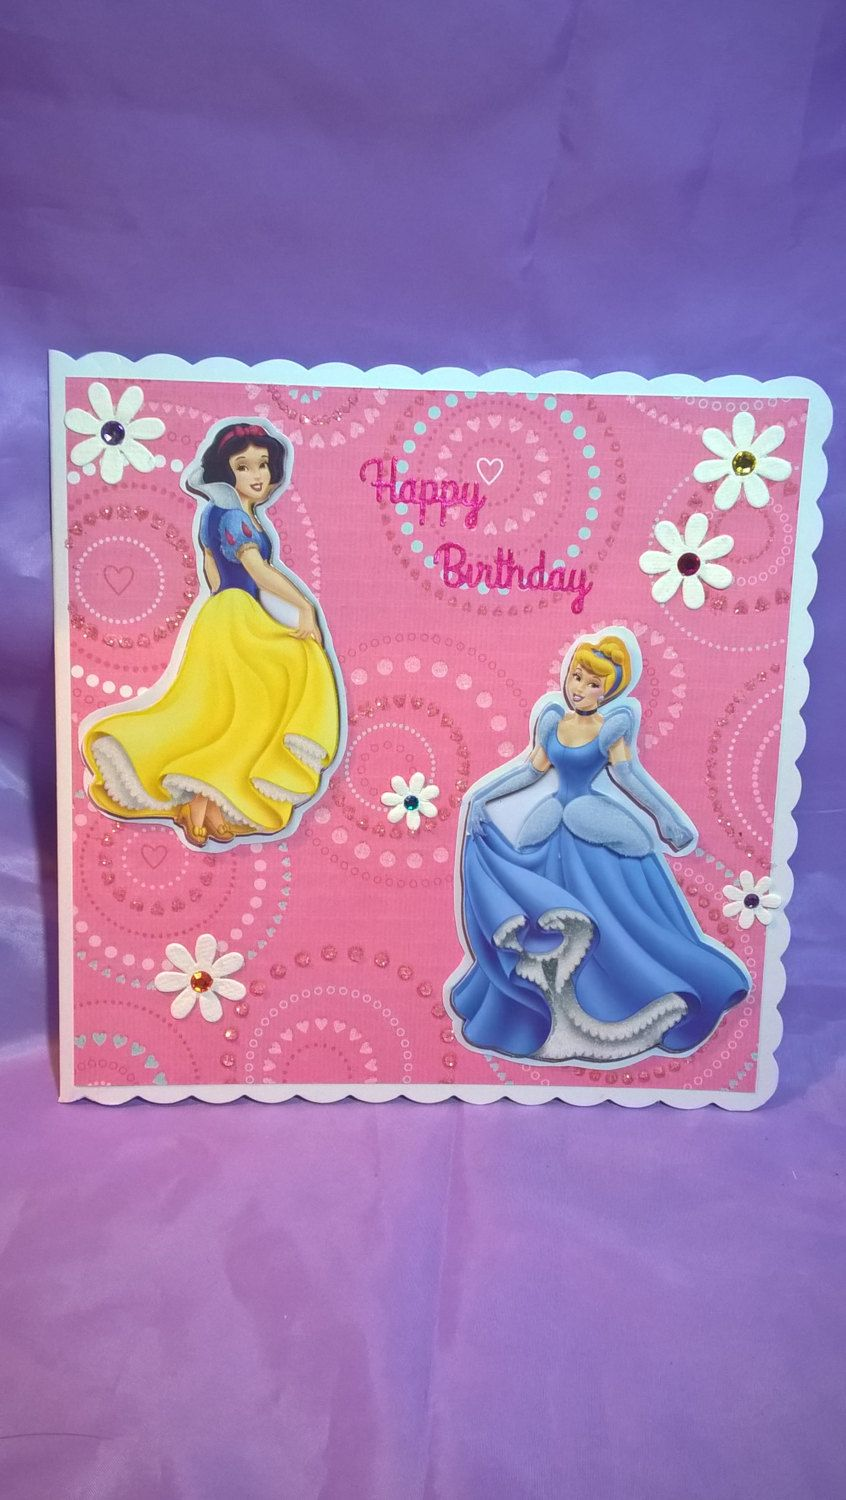 large Disney princesses' birthday card for all little